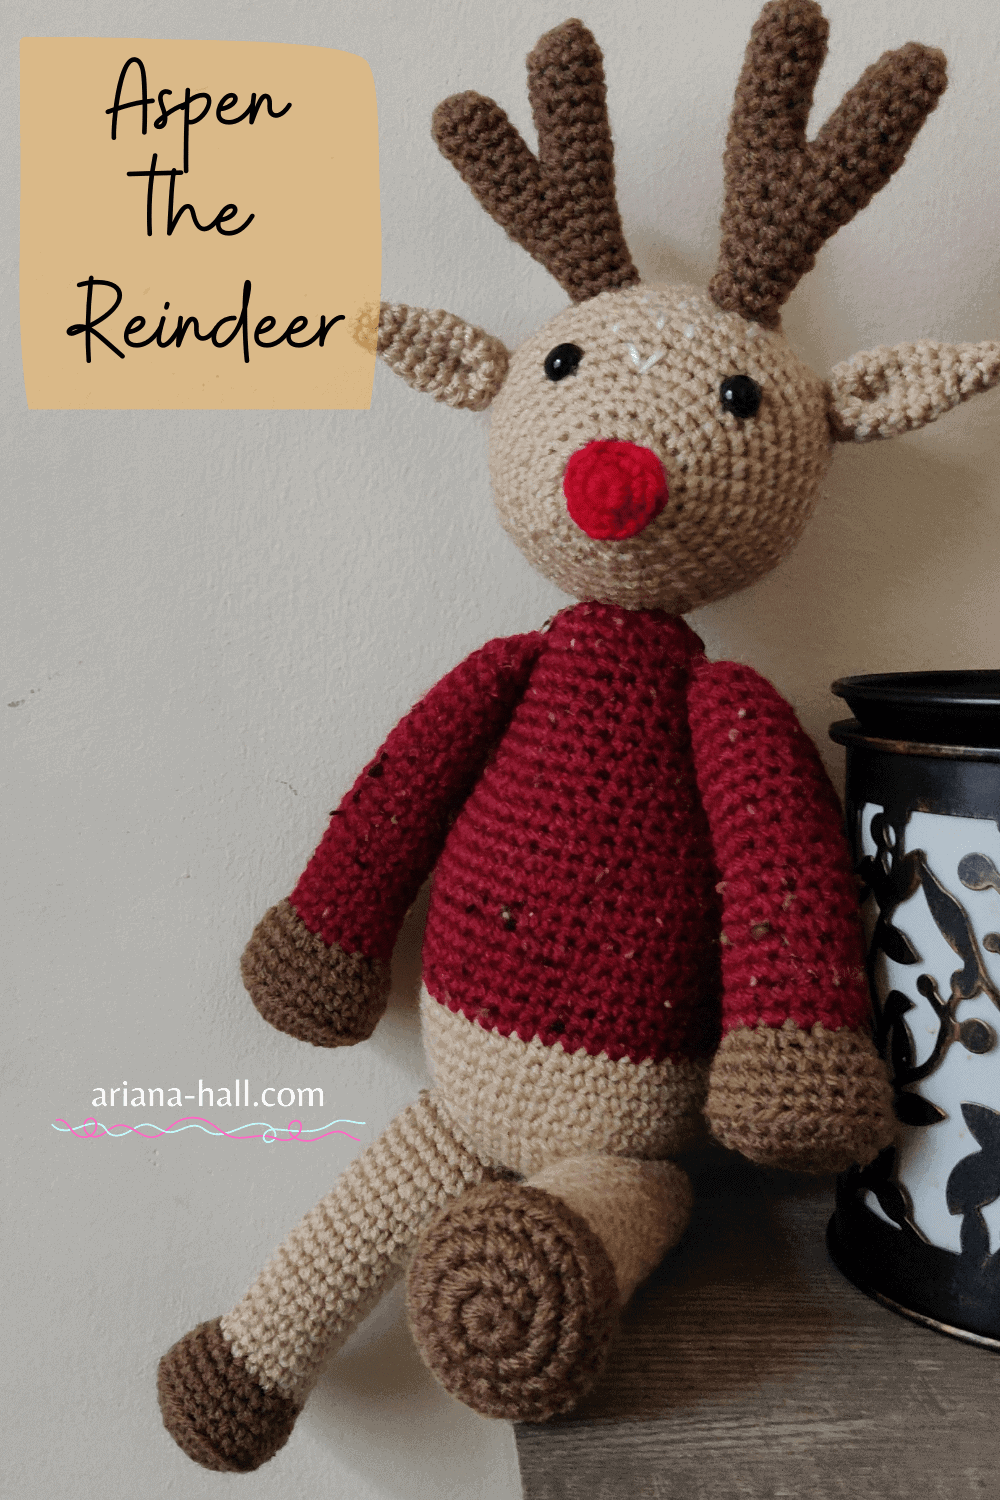 Crochet reindeer with a bright red nose sitting on a table.